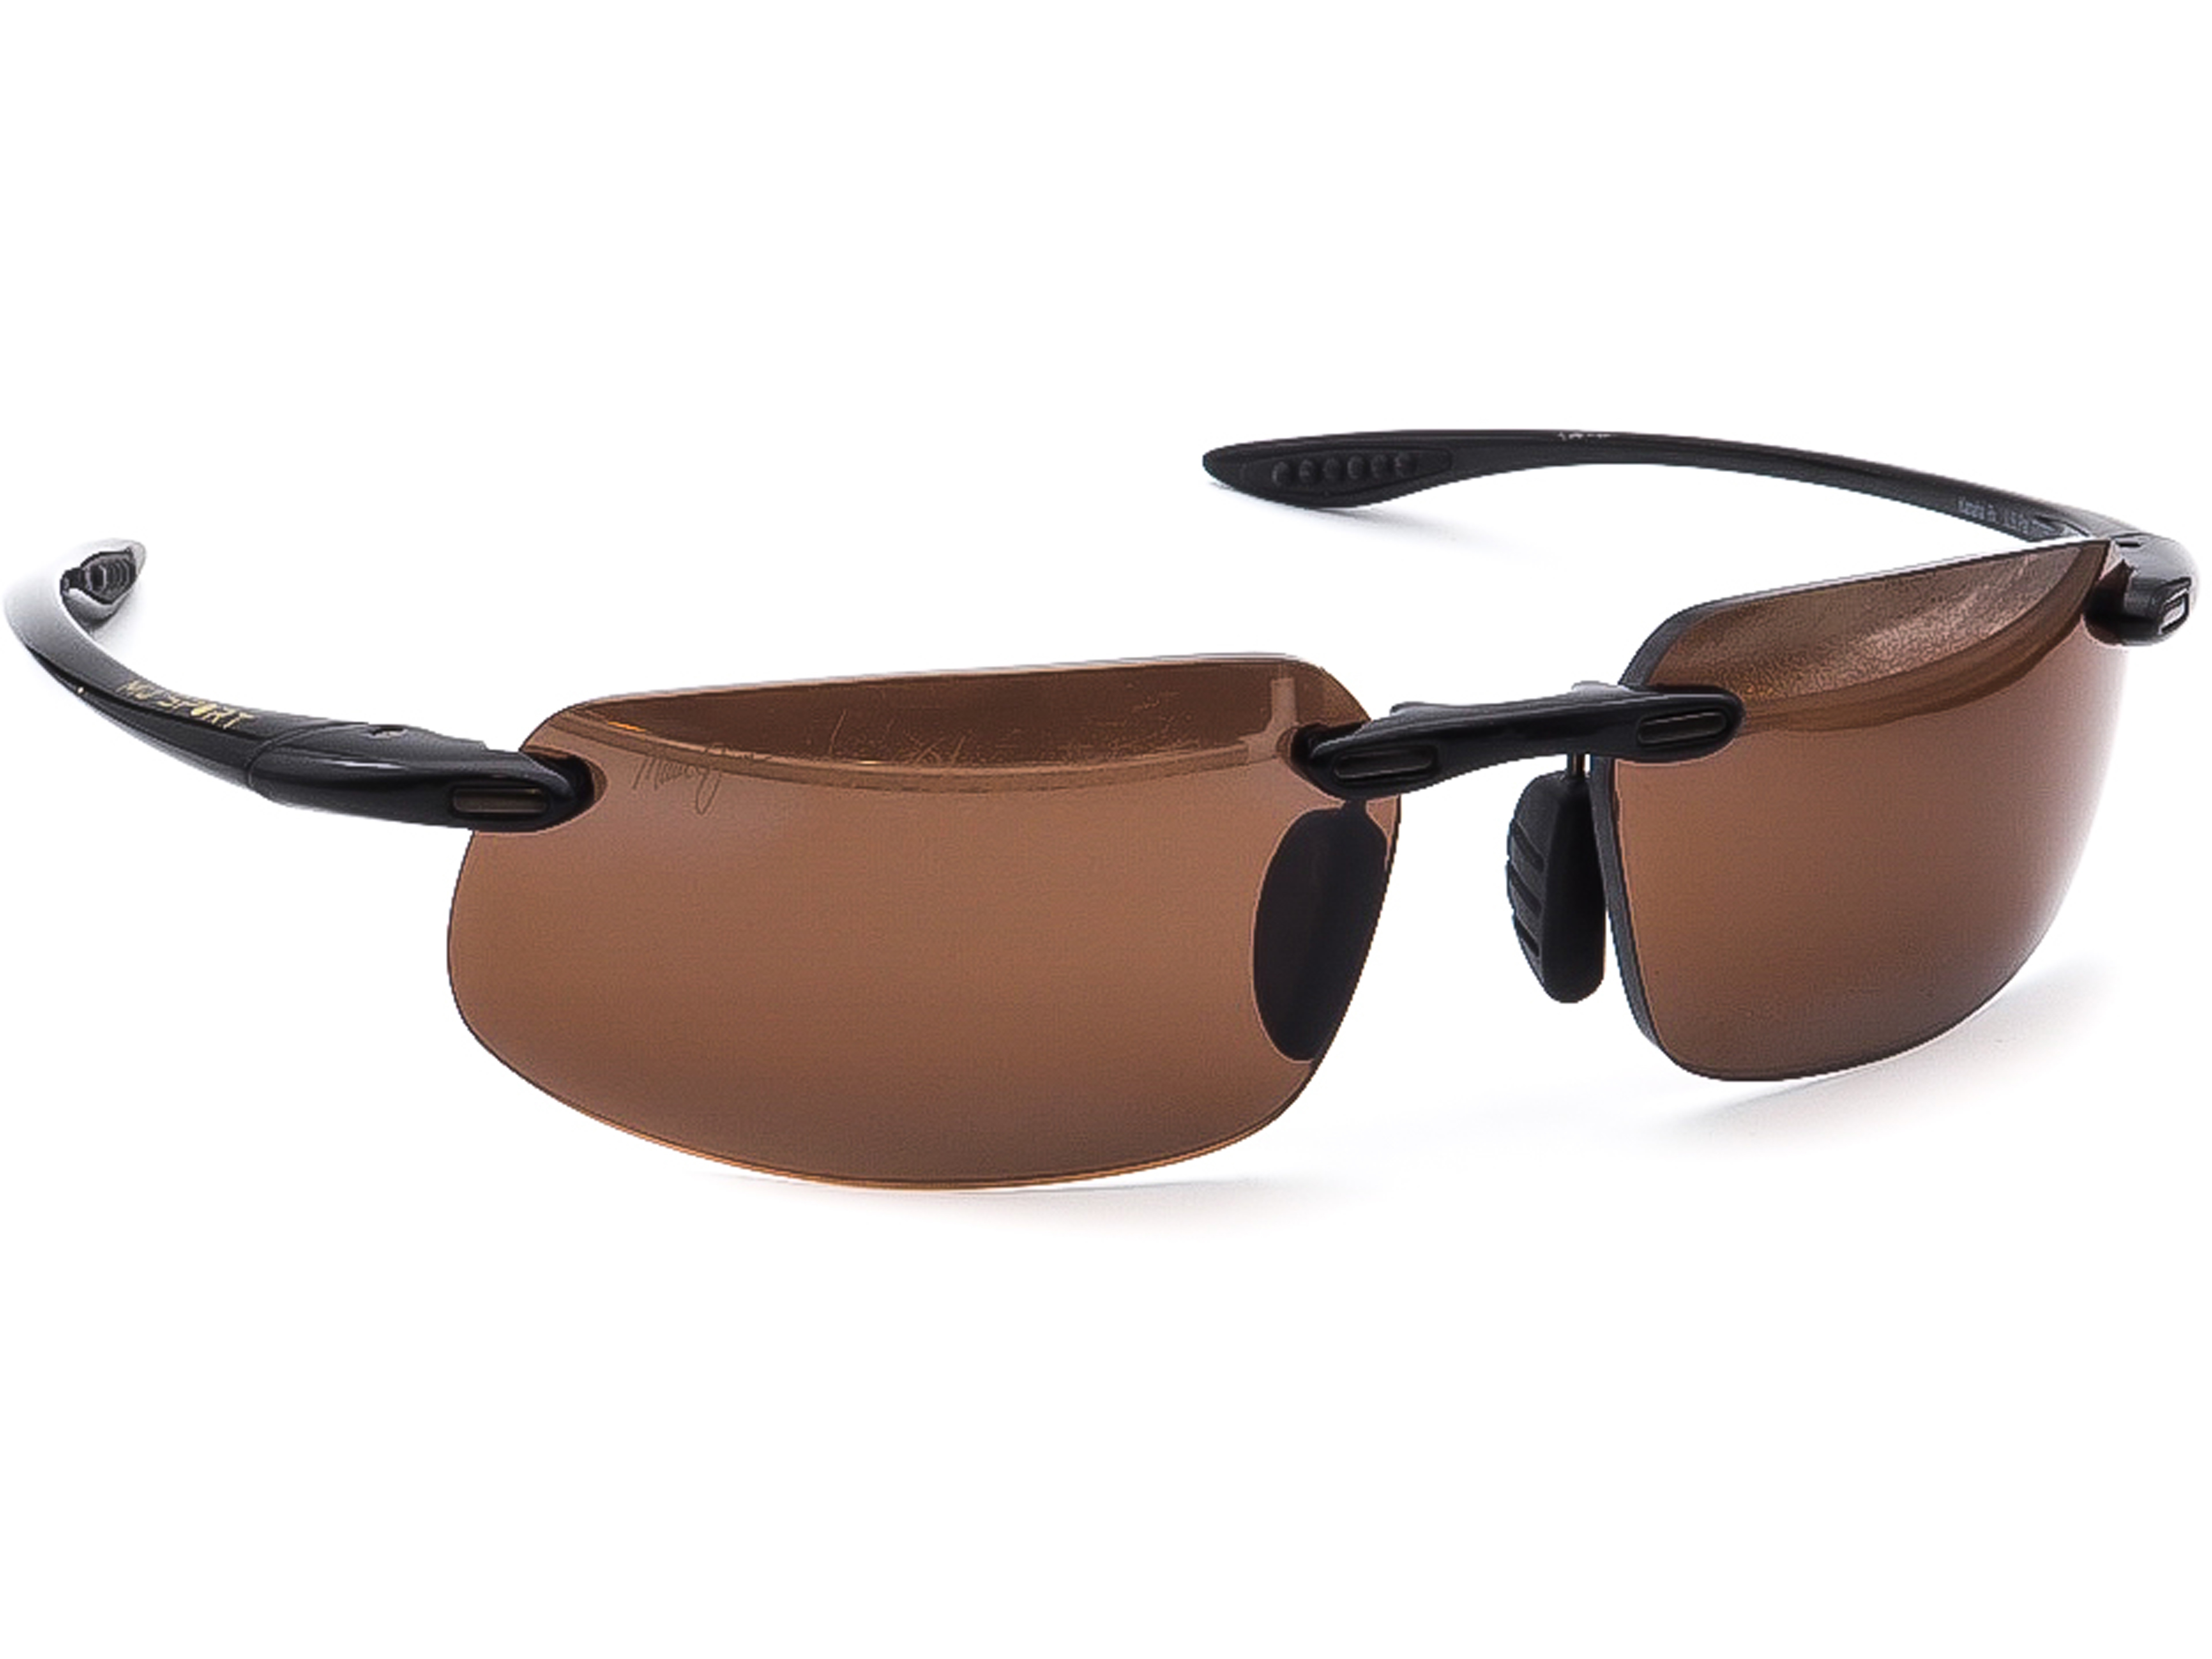 Maui Jim Kanaha Rx MJ-909-02 Sunglasses Frame Only